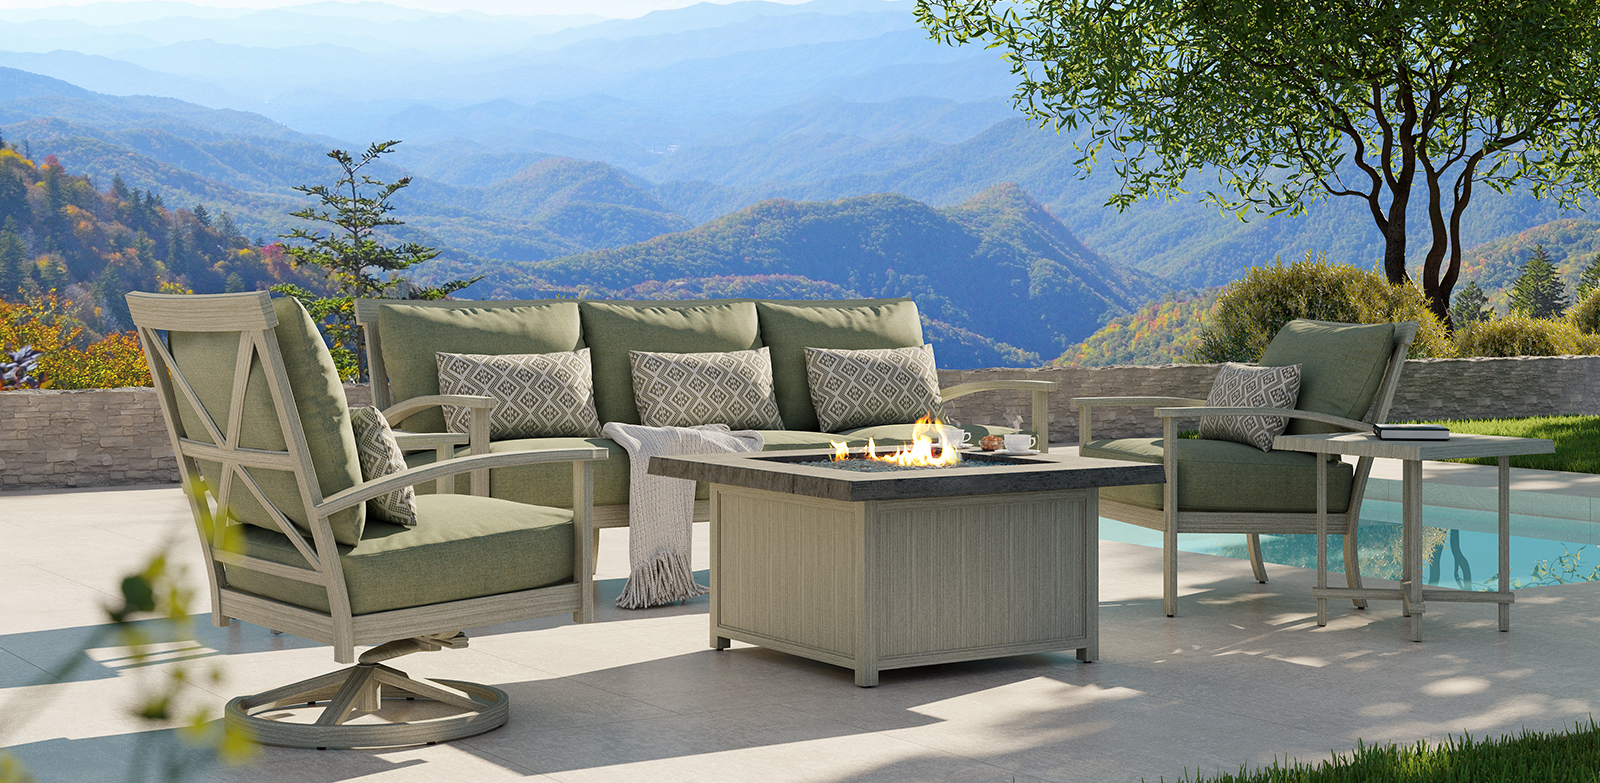 Commercial Outdoor Furniture At Guaranteed Lowest Prices